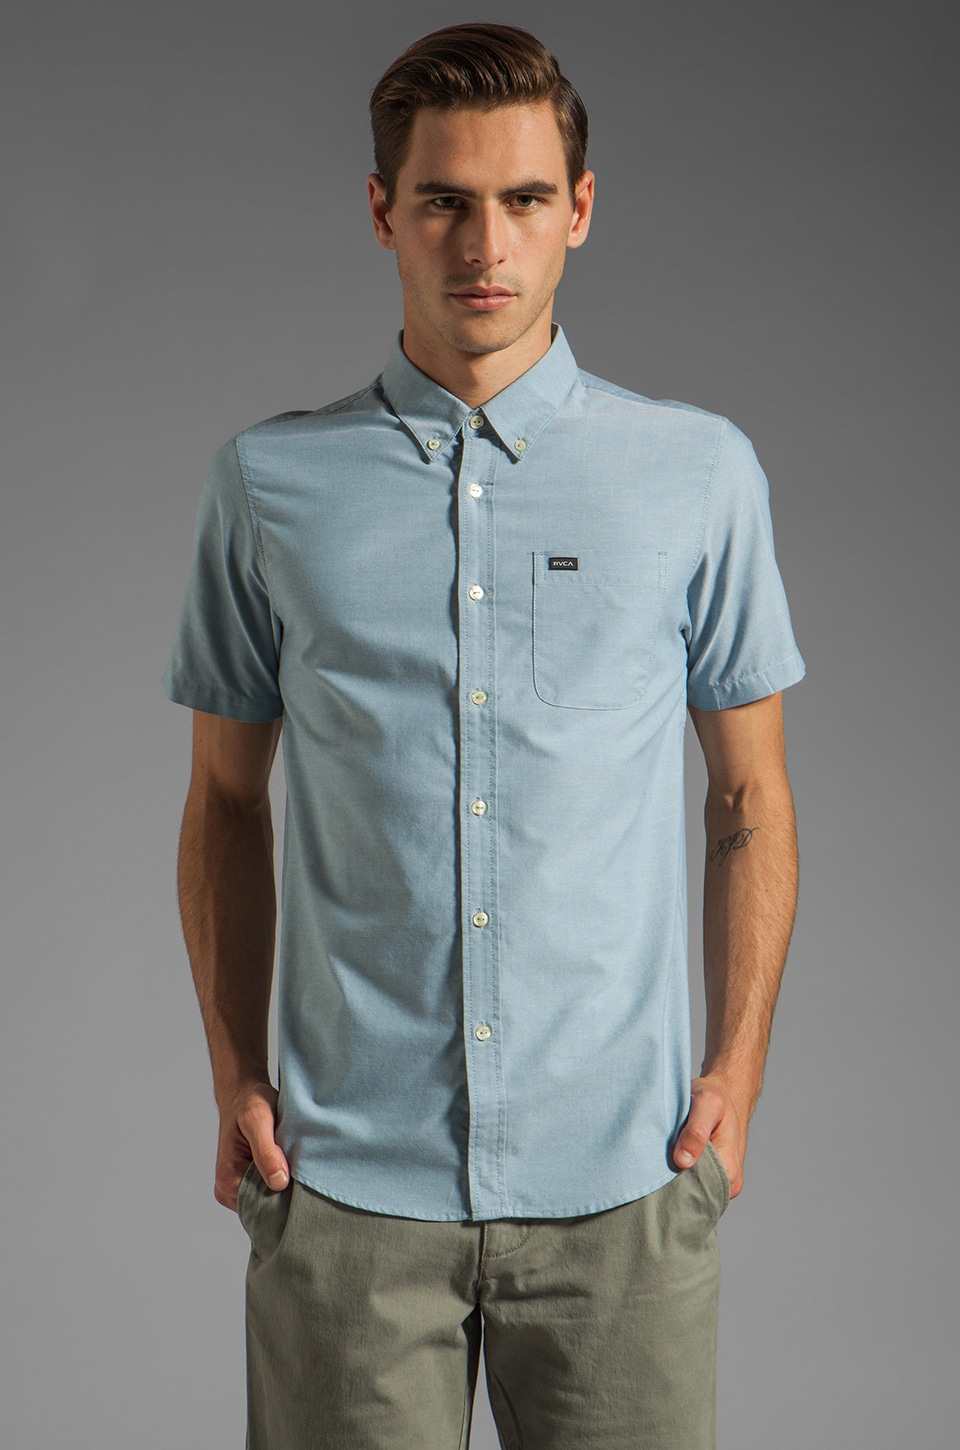 RVCA That'll Do Oxford S/S Shirt en Aegean Blue